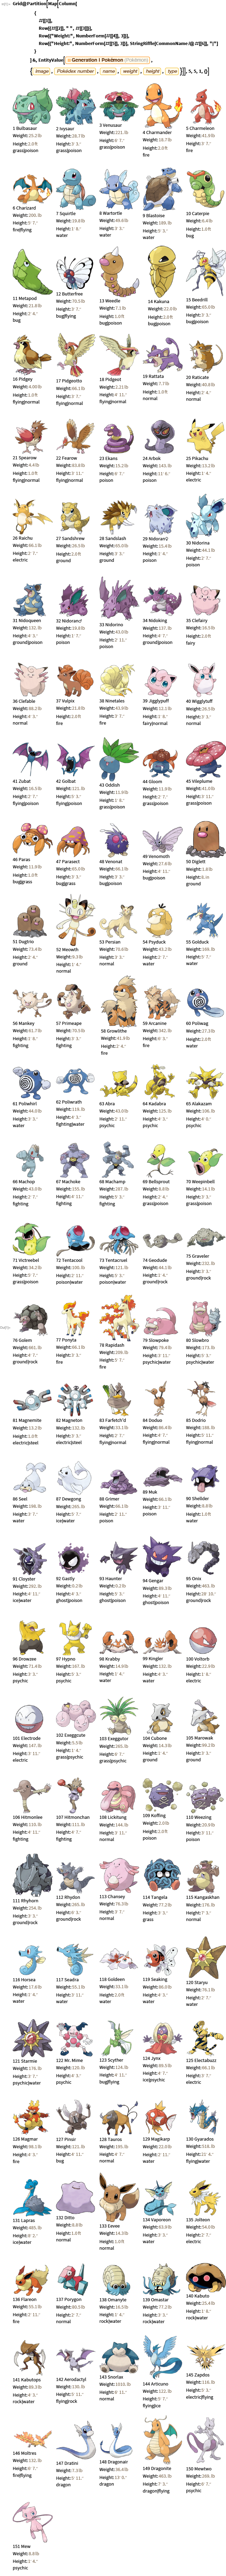 All 151 Pokémon currently available in Pokémon GO